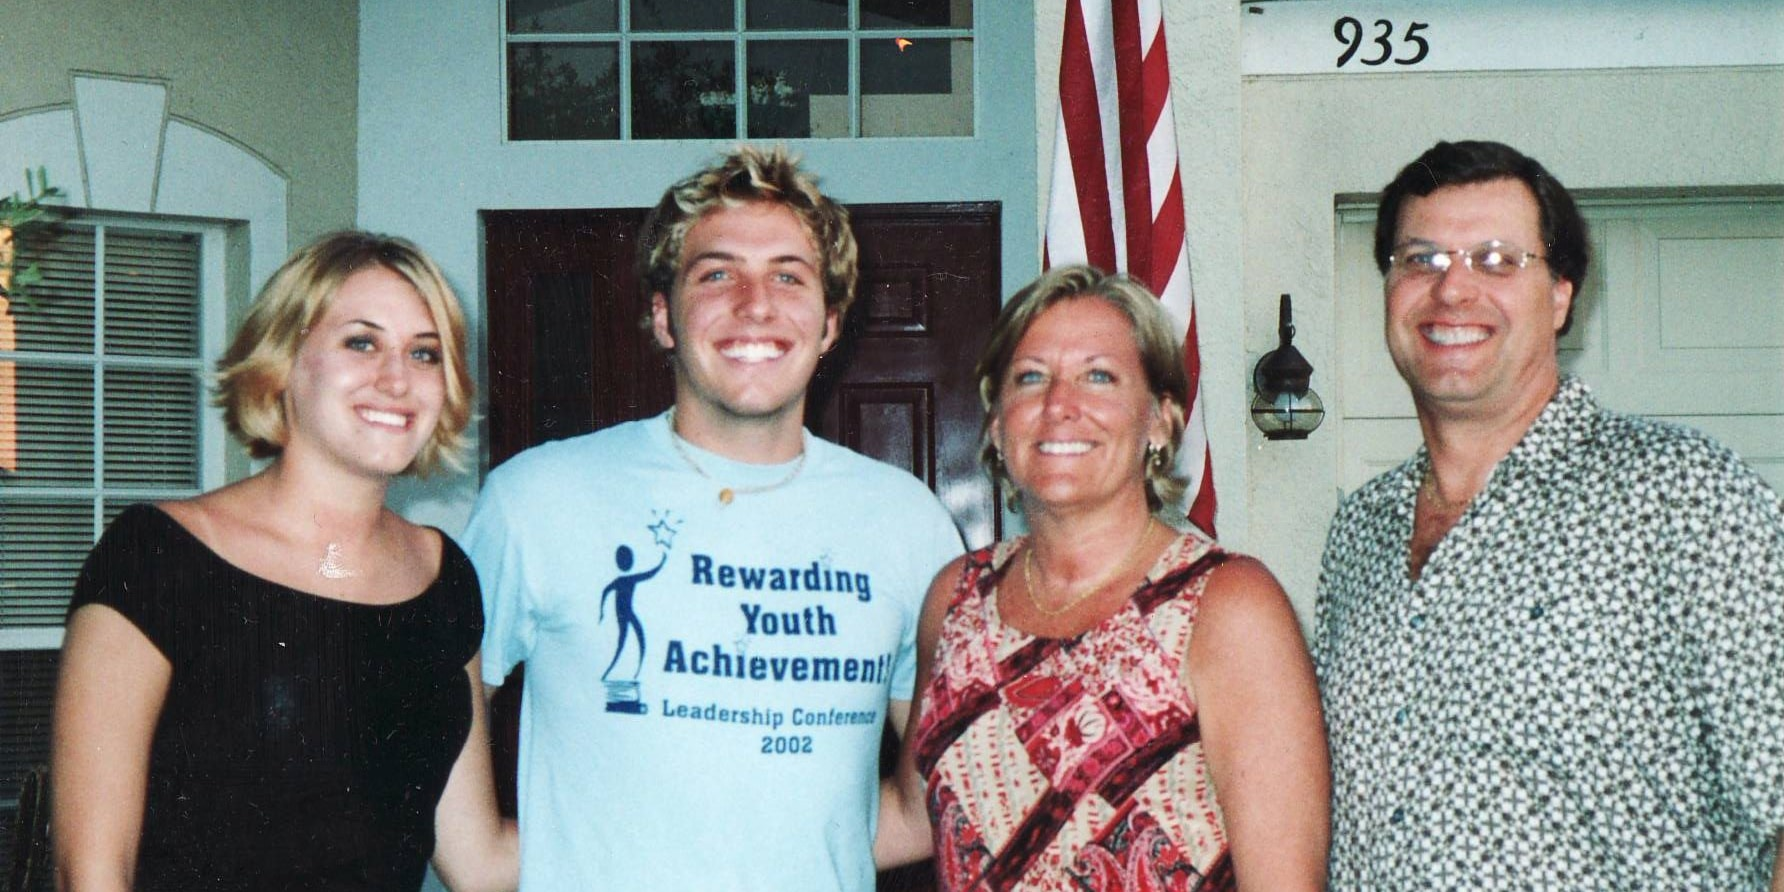 Jennifer Kesse, left, is pictured with her brother, Logan, and parents, Drew and Joyce Kesse, in an undated photo.